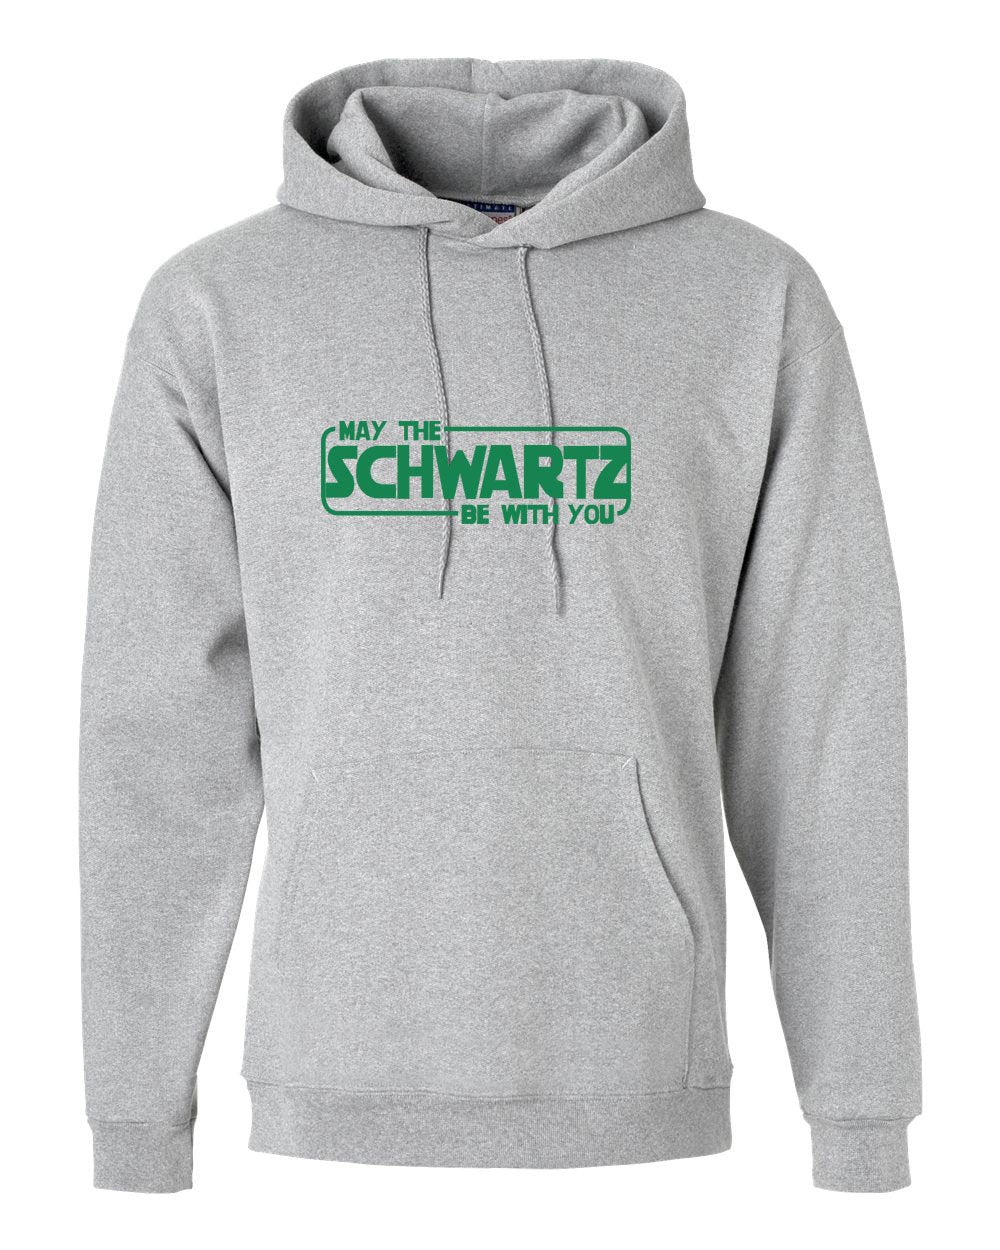 May The Schwartz Be With You Hoodie